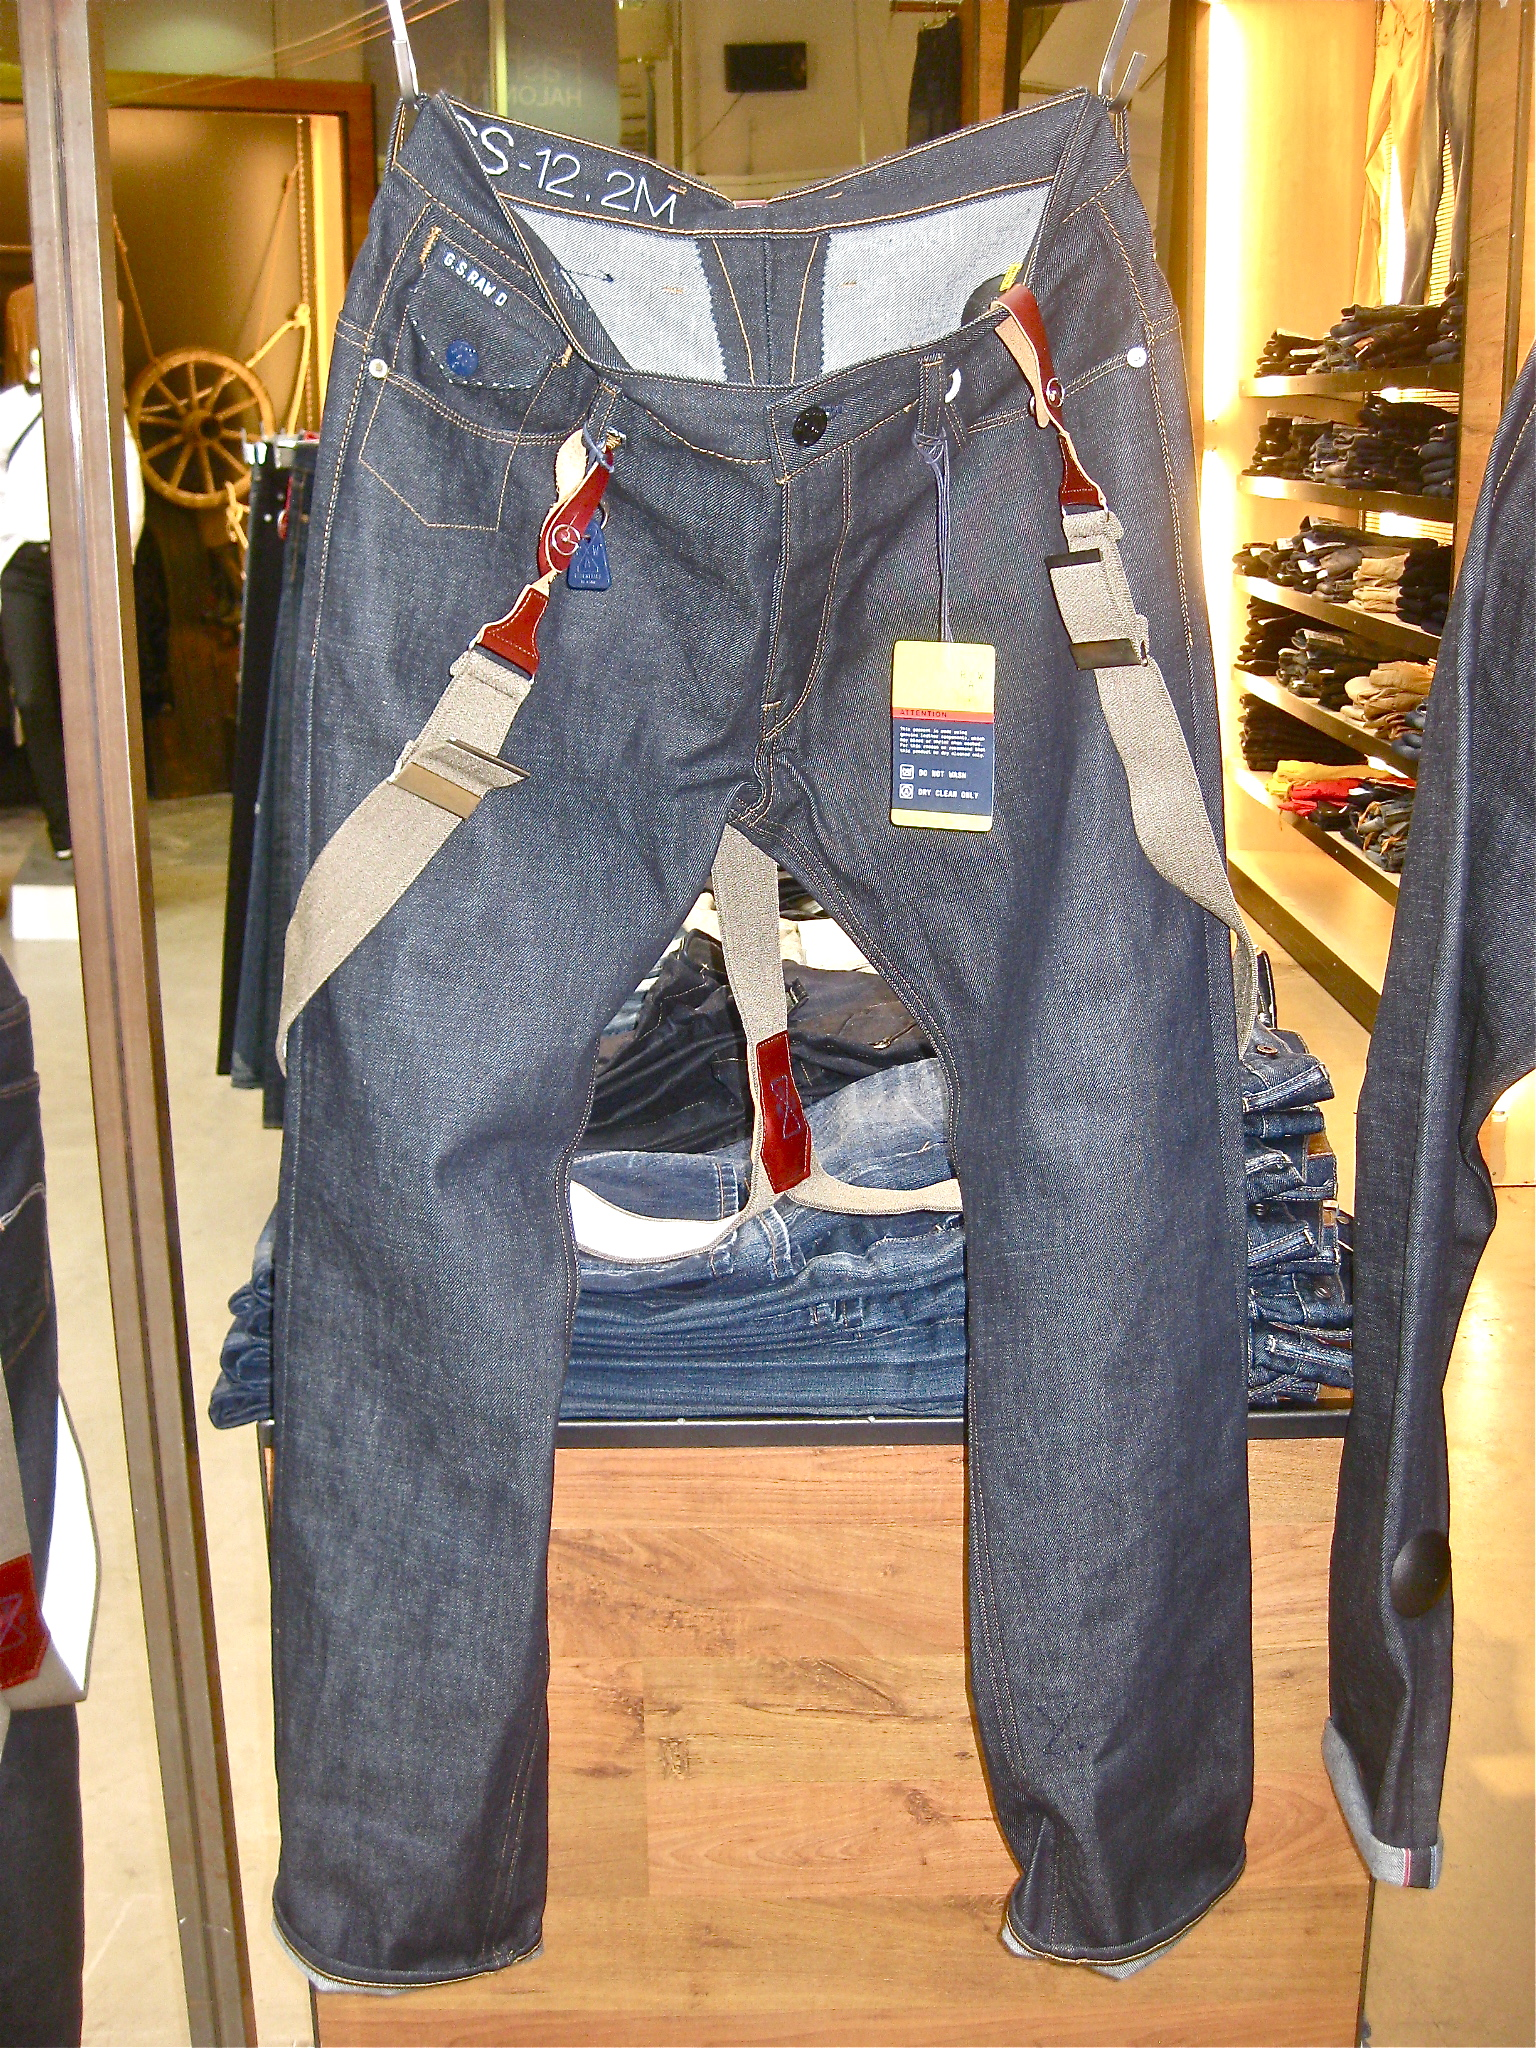 G-starin ekslusiiviseen RAW Essentials mallistoon kuuluva raaka selvage denim, New Morris Tapered 349,90€